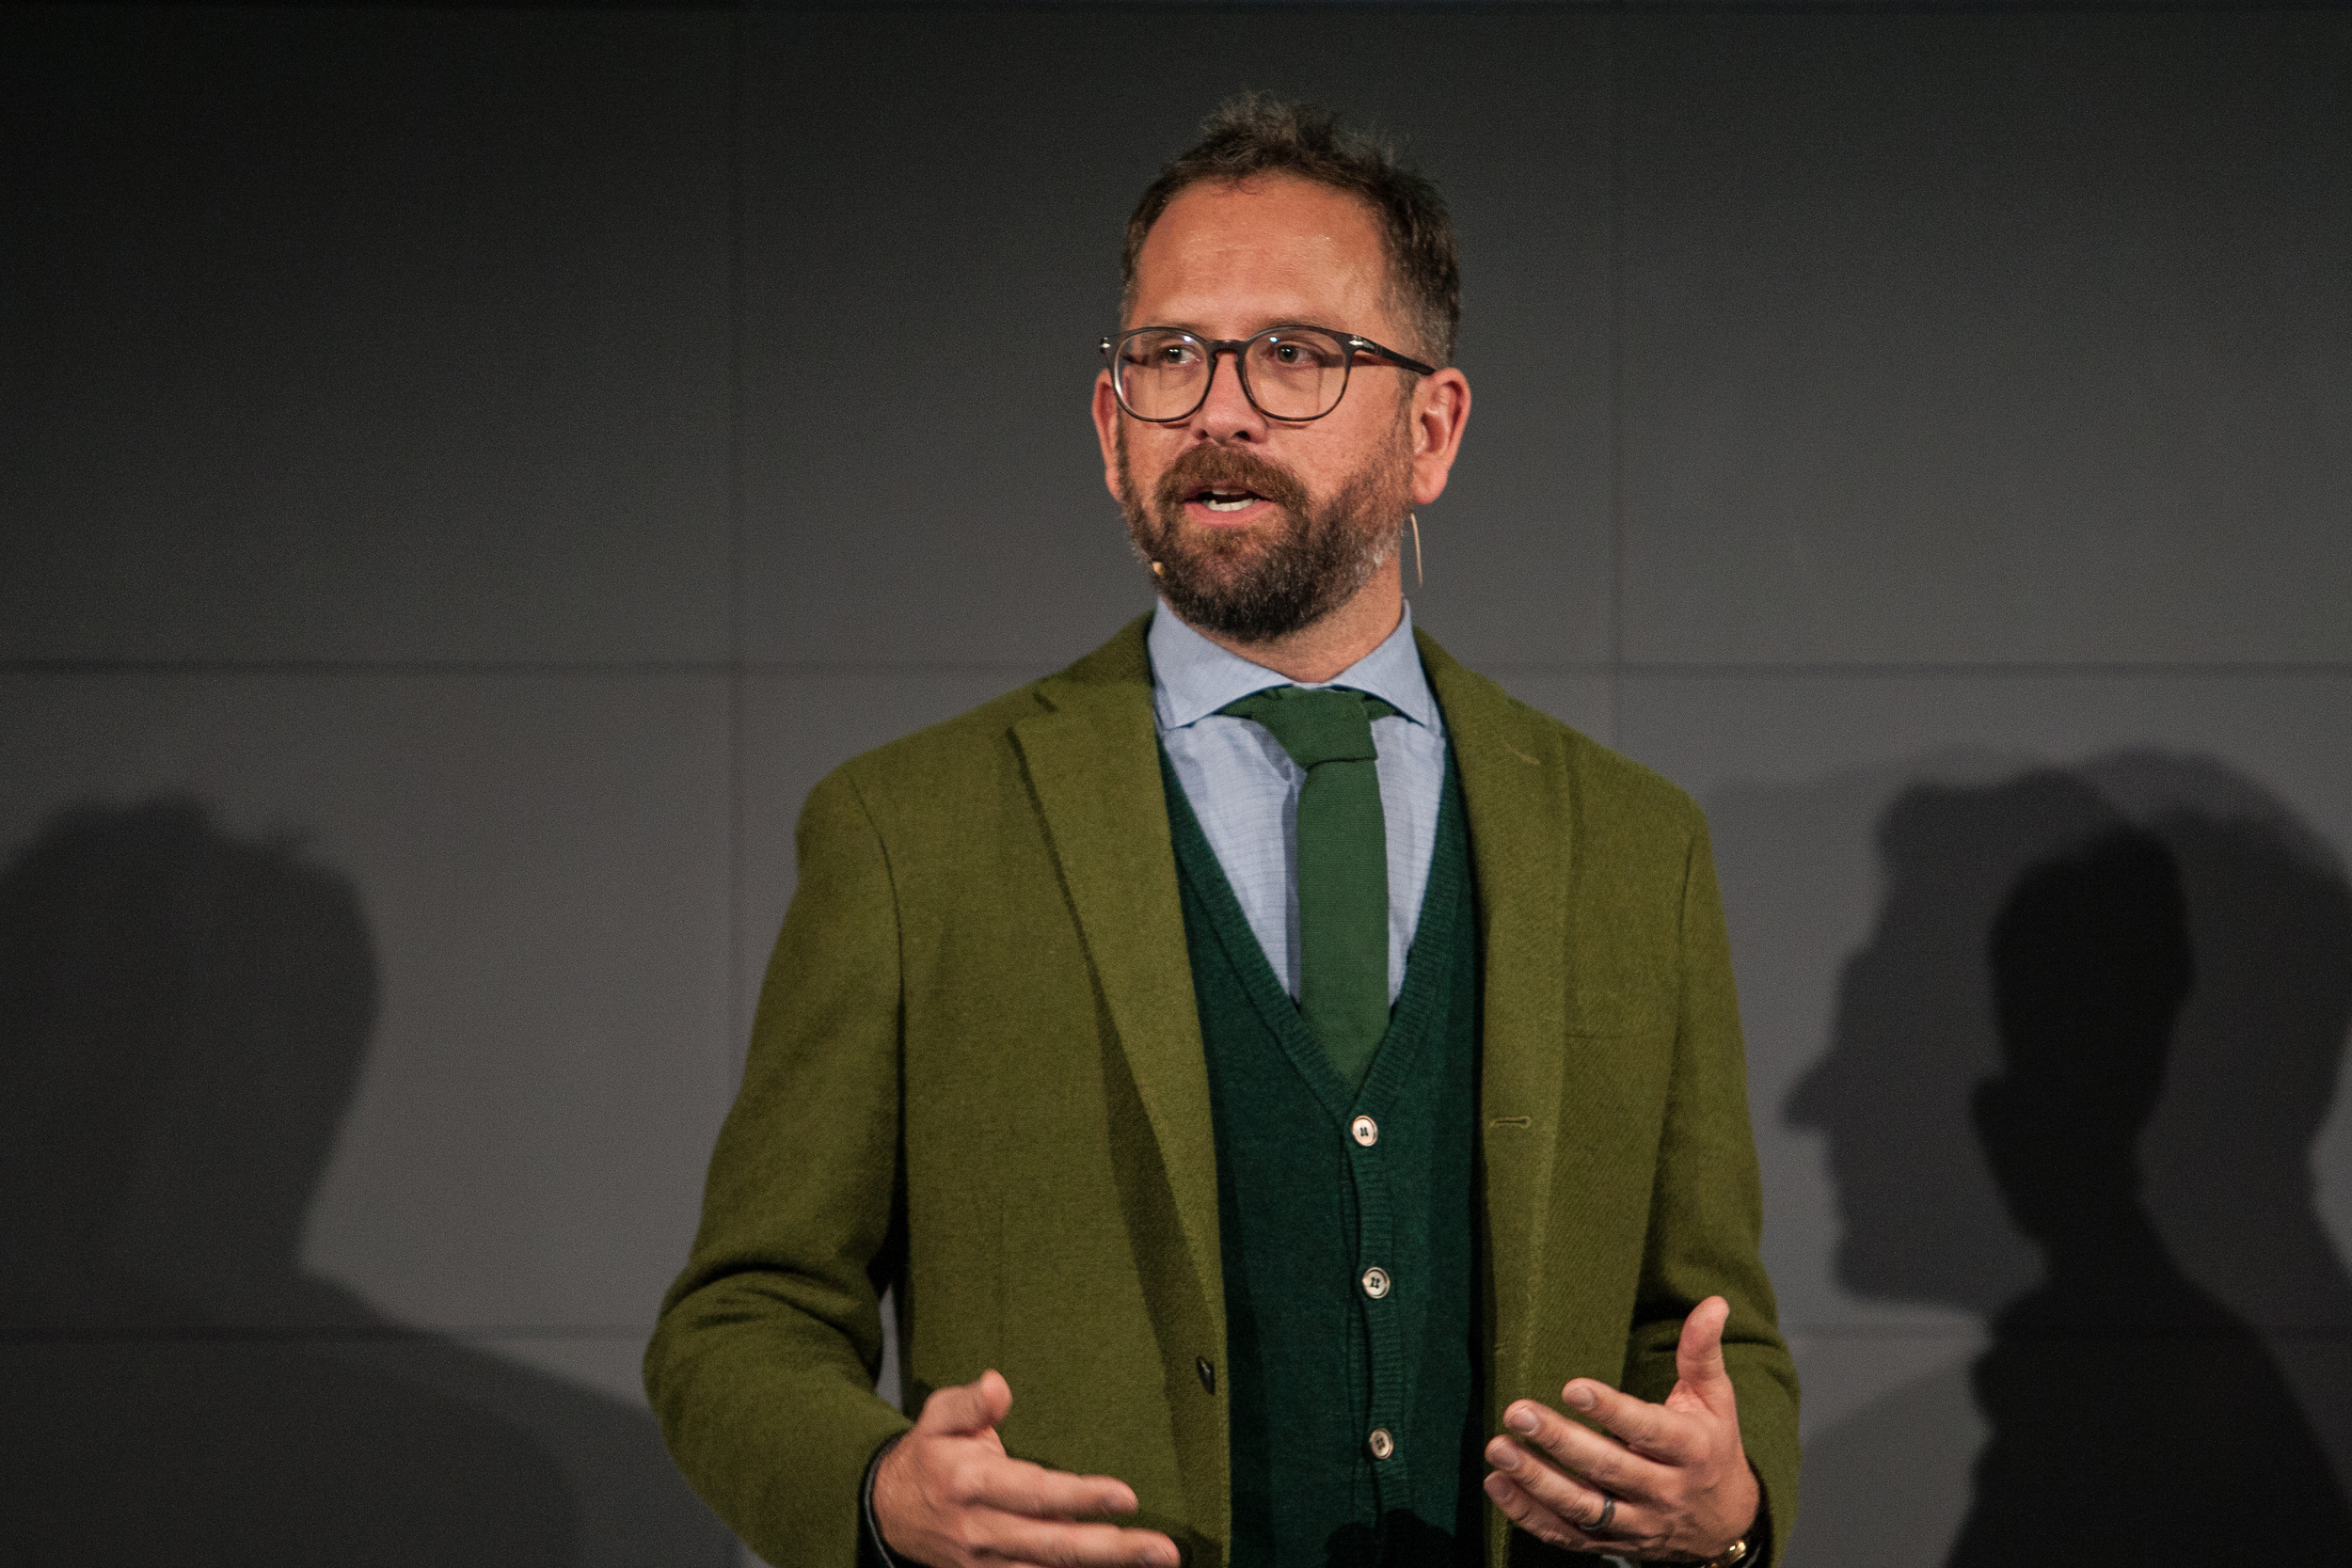 Slipstream CEO Jonathon Vaughters was the best dressed in the room, and as expected with plenty of green to show.